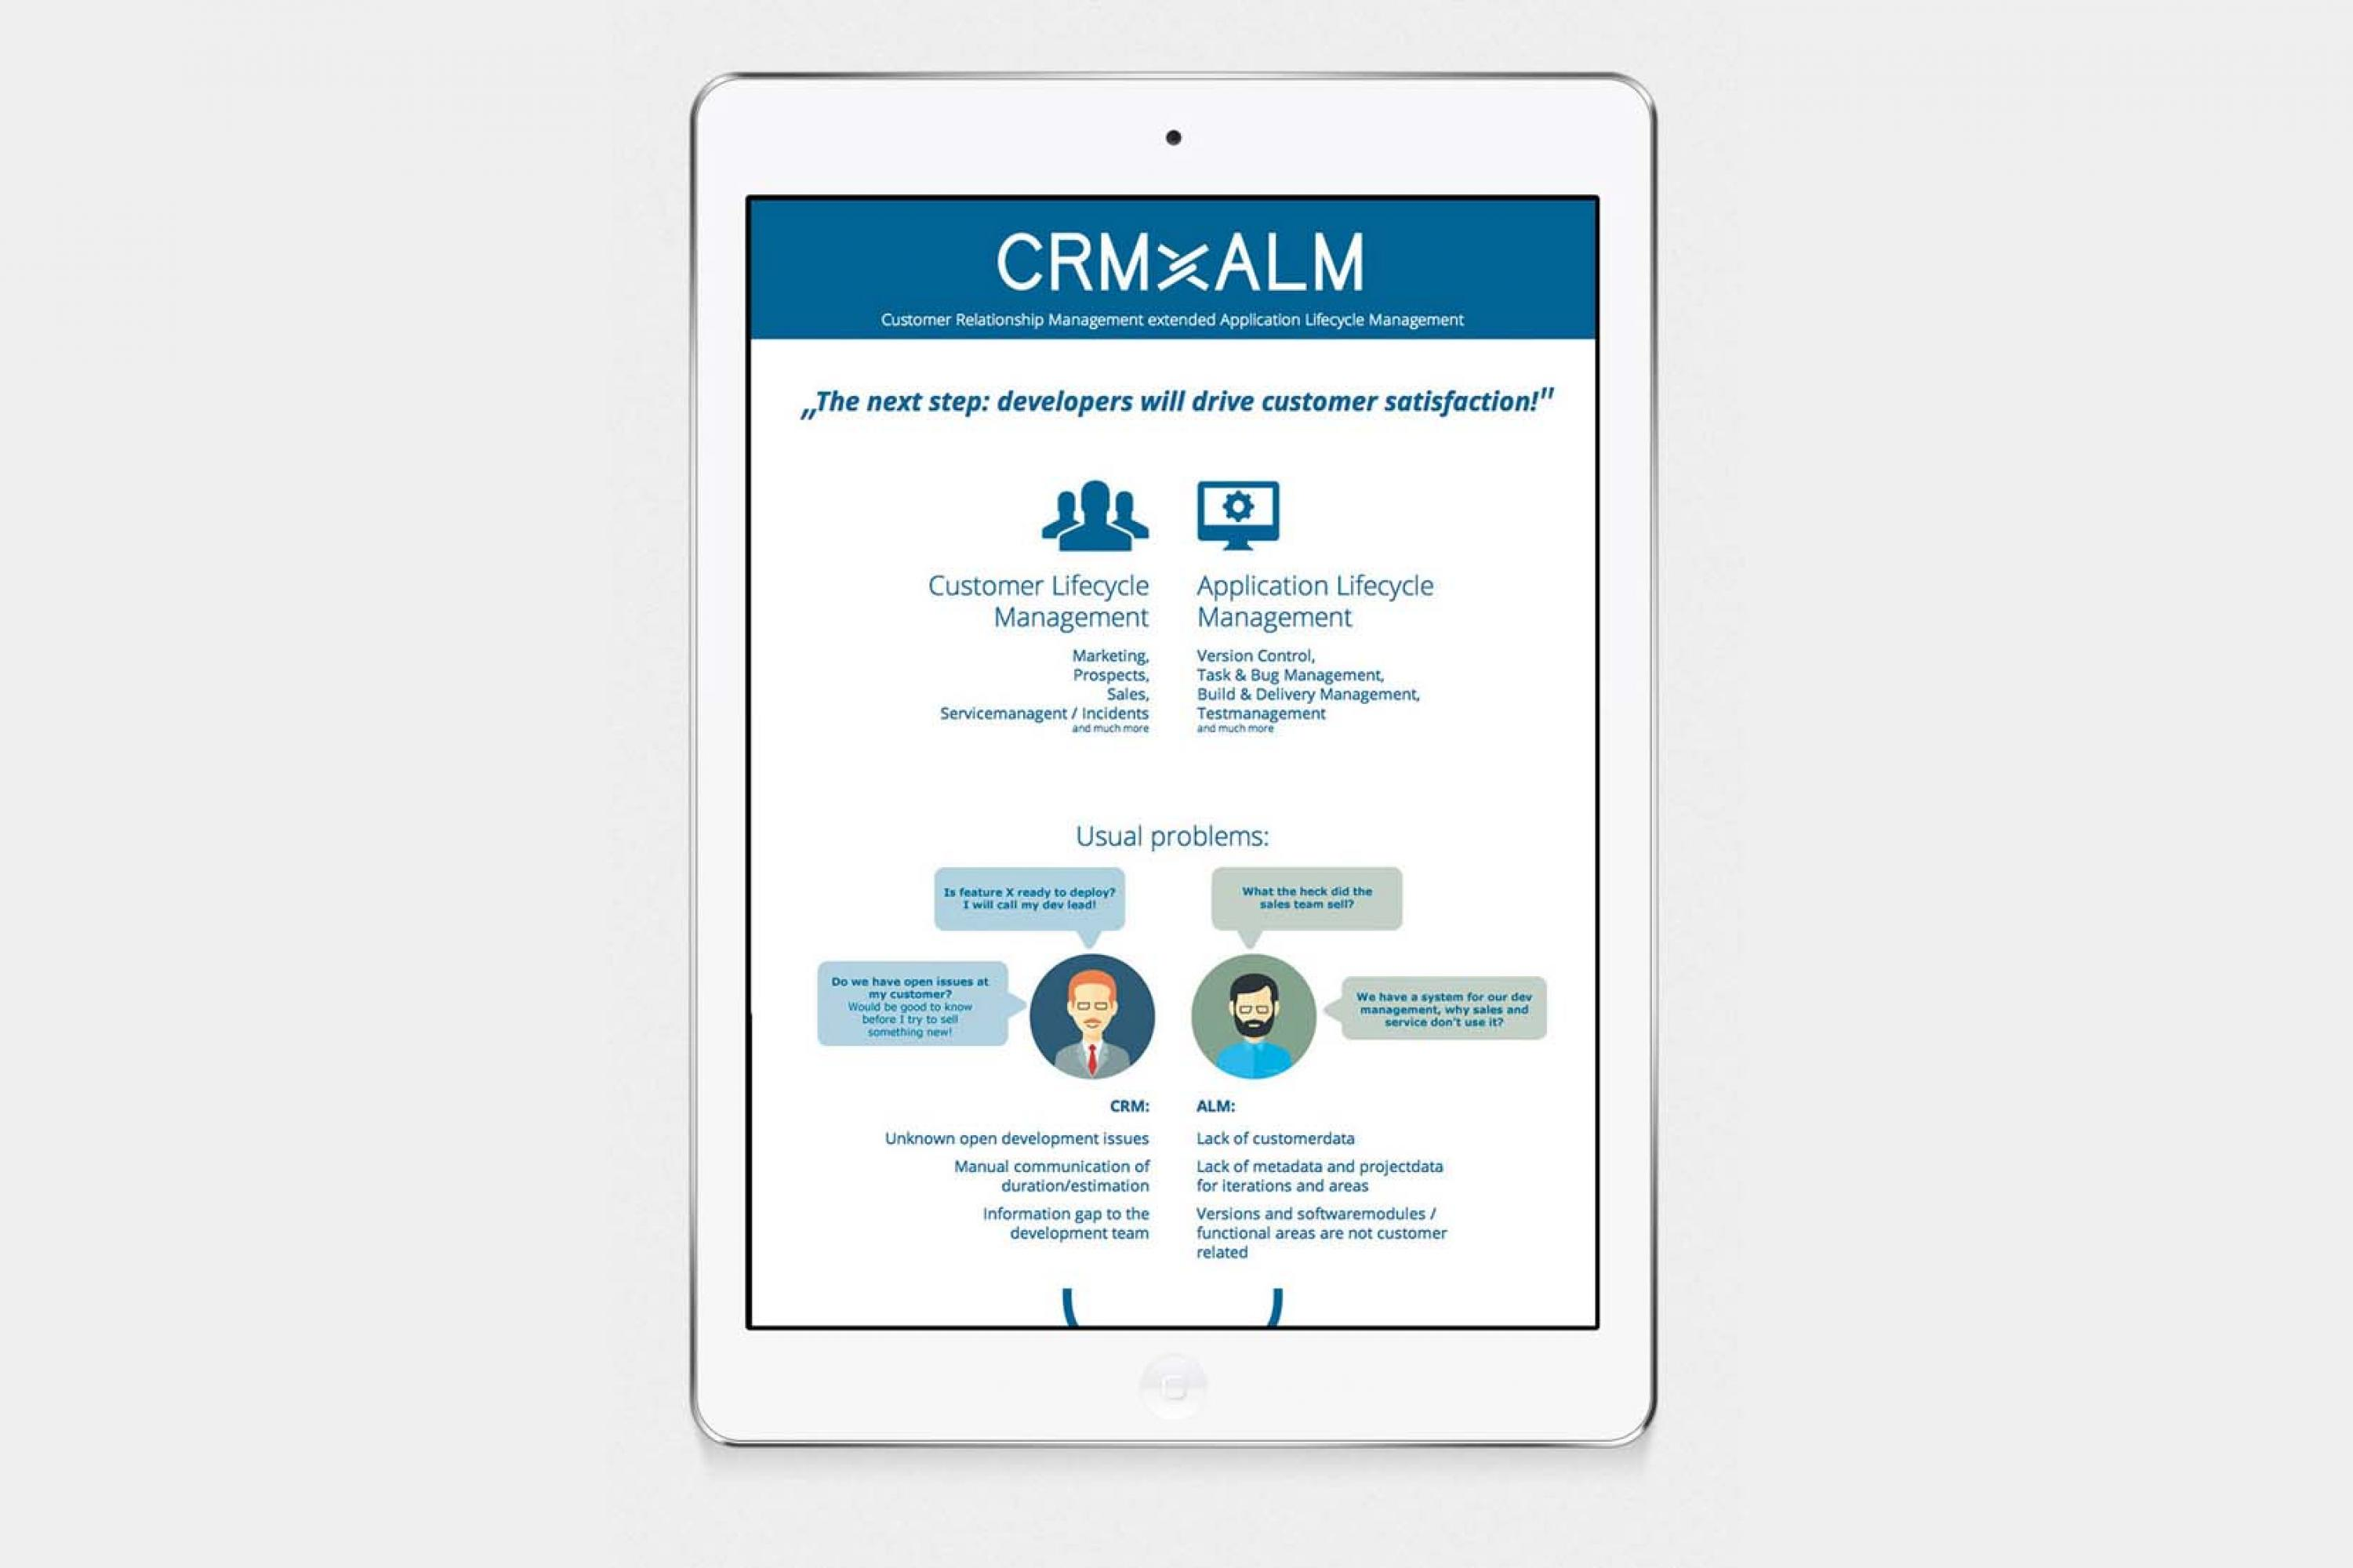 22CRM-x-ALM-Customer-Relationship-Management-extended-Application-Lifecycle-Management-Logo-04